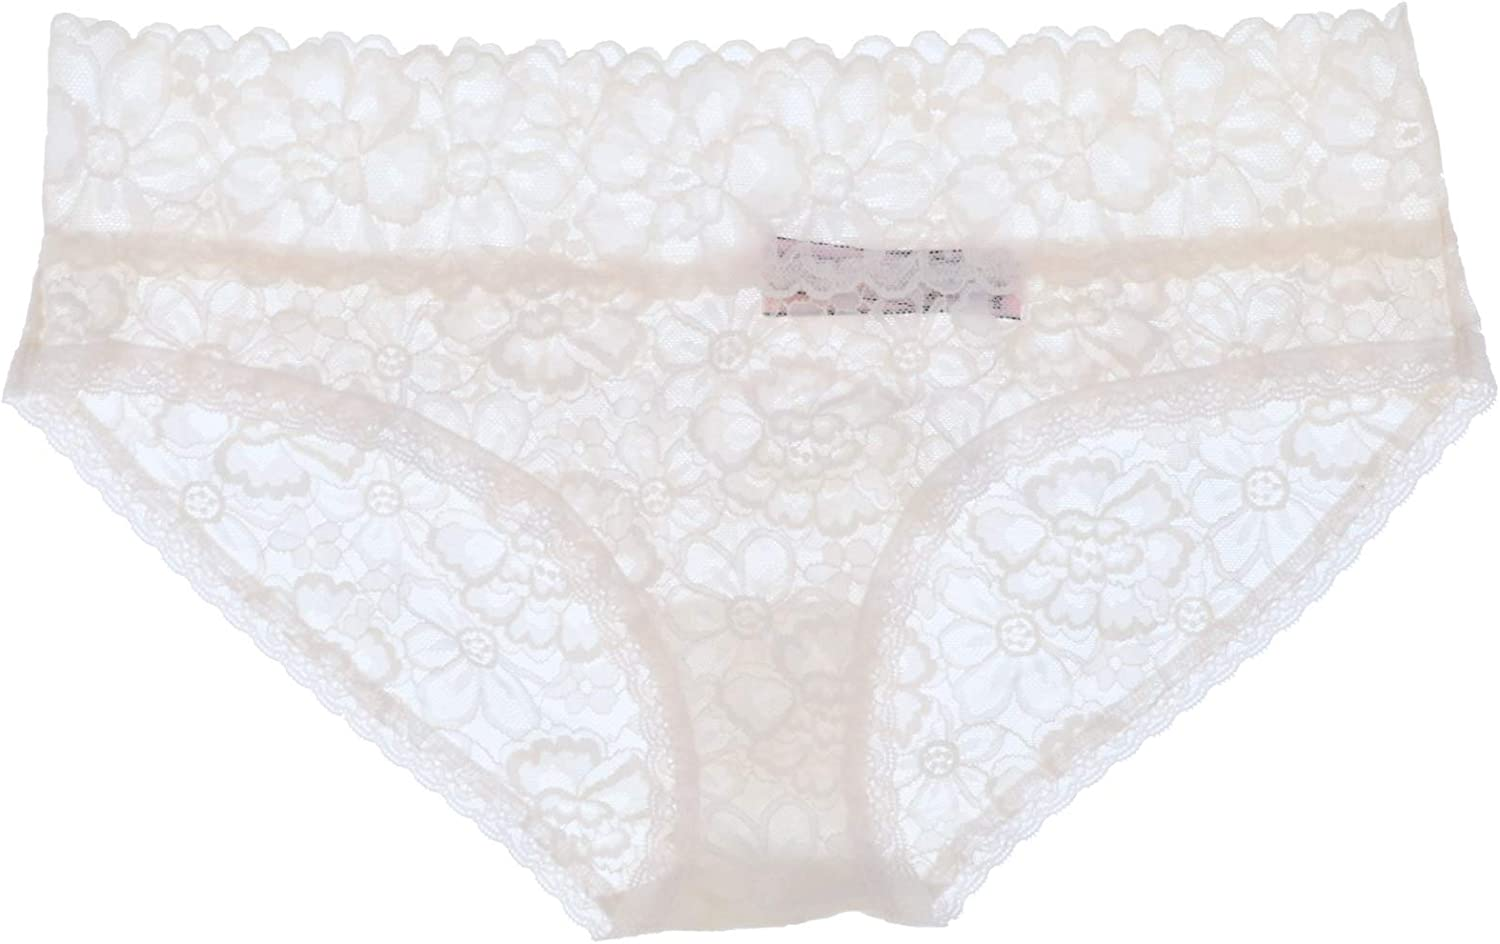 Victoria/'s Secret Panties Lot of 3 The Lacie Hiphugger Lace Underwear New Vs Nwt